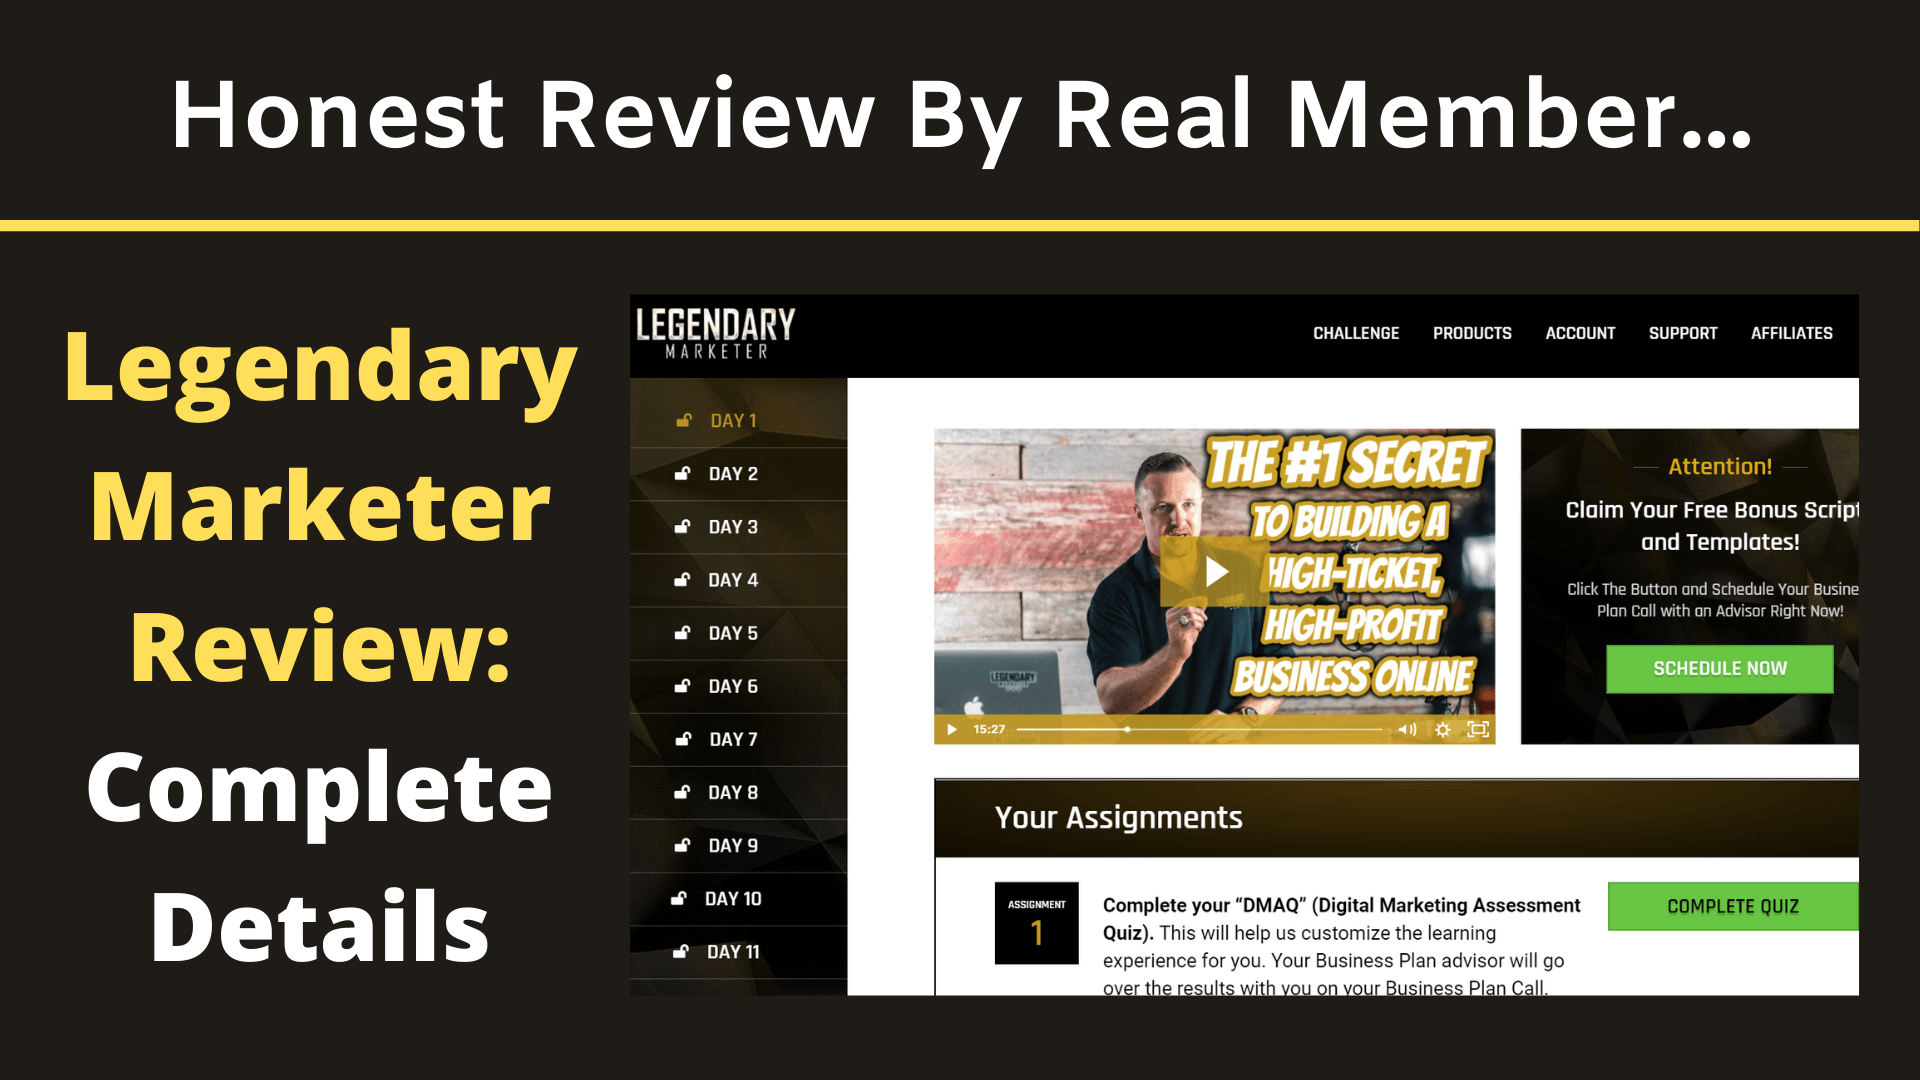 Legendary Marketer Review: Here's What They Don't Tell You